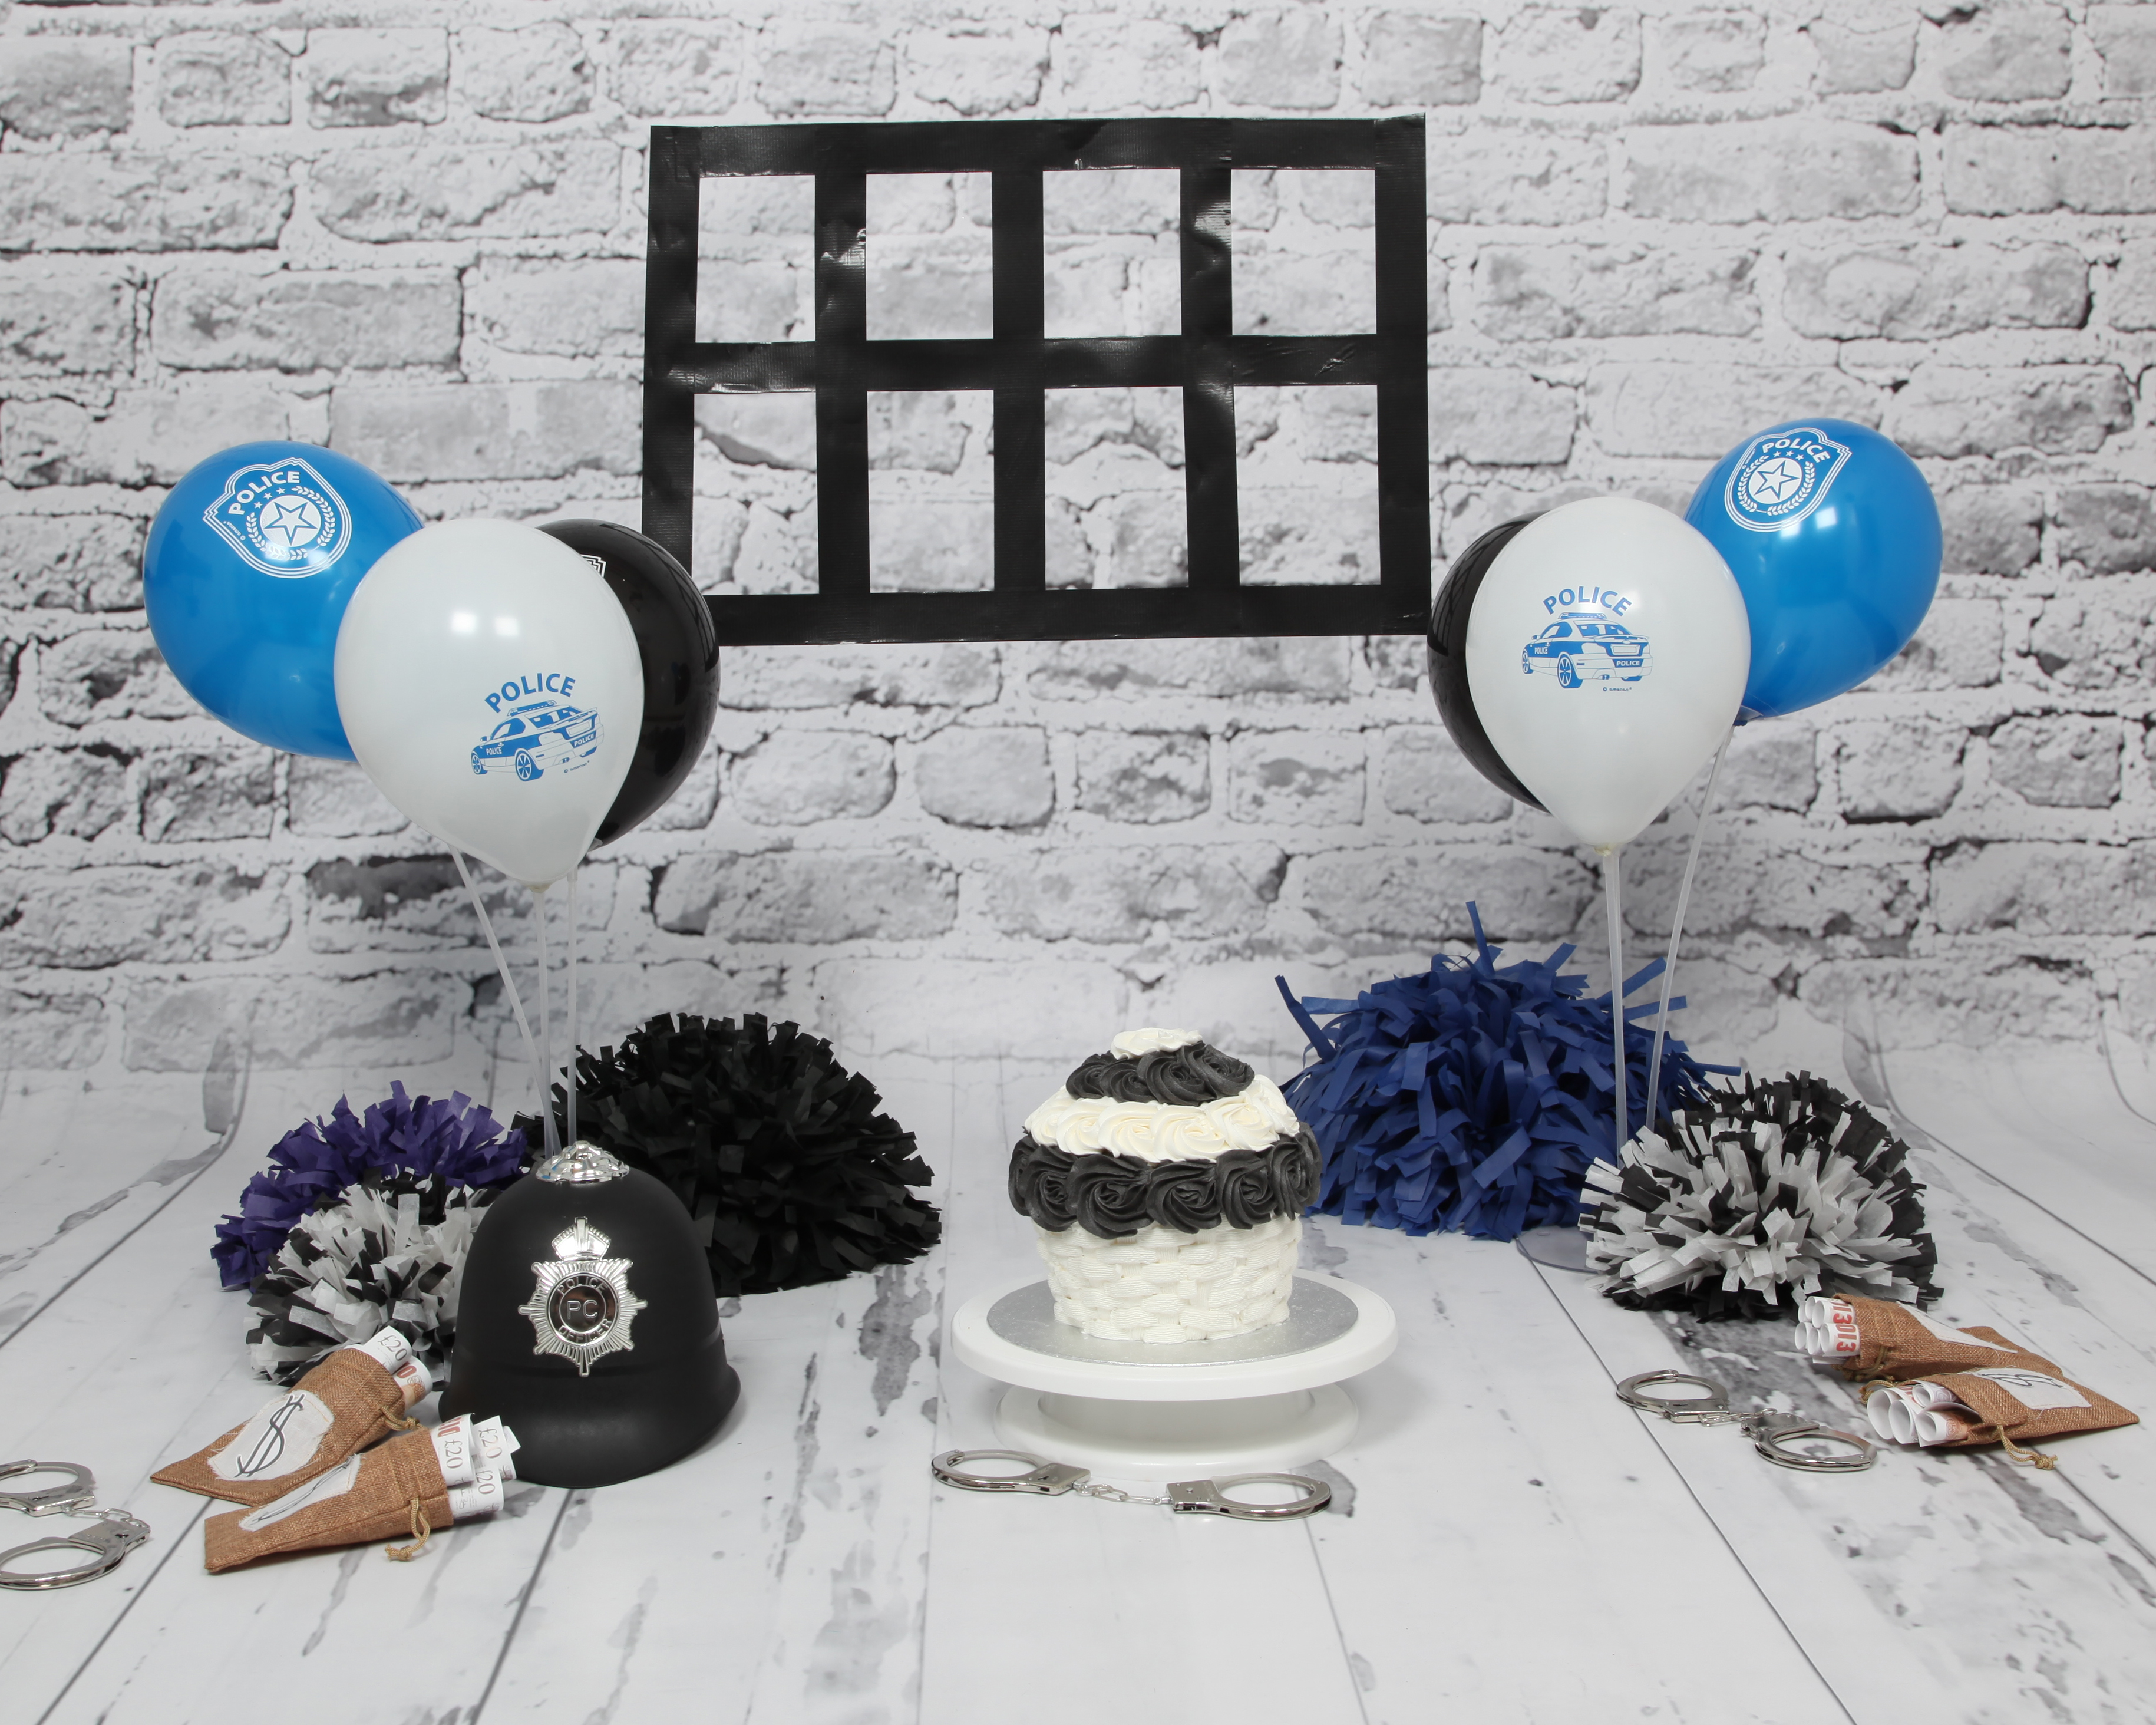 Cops and Robbers Cake Smash